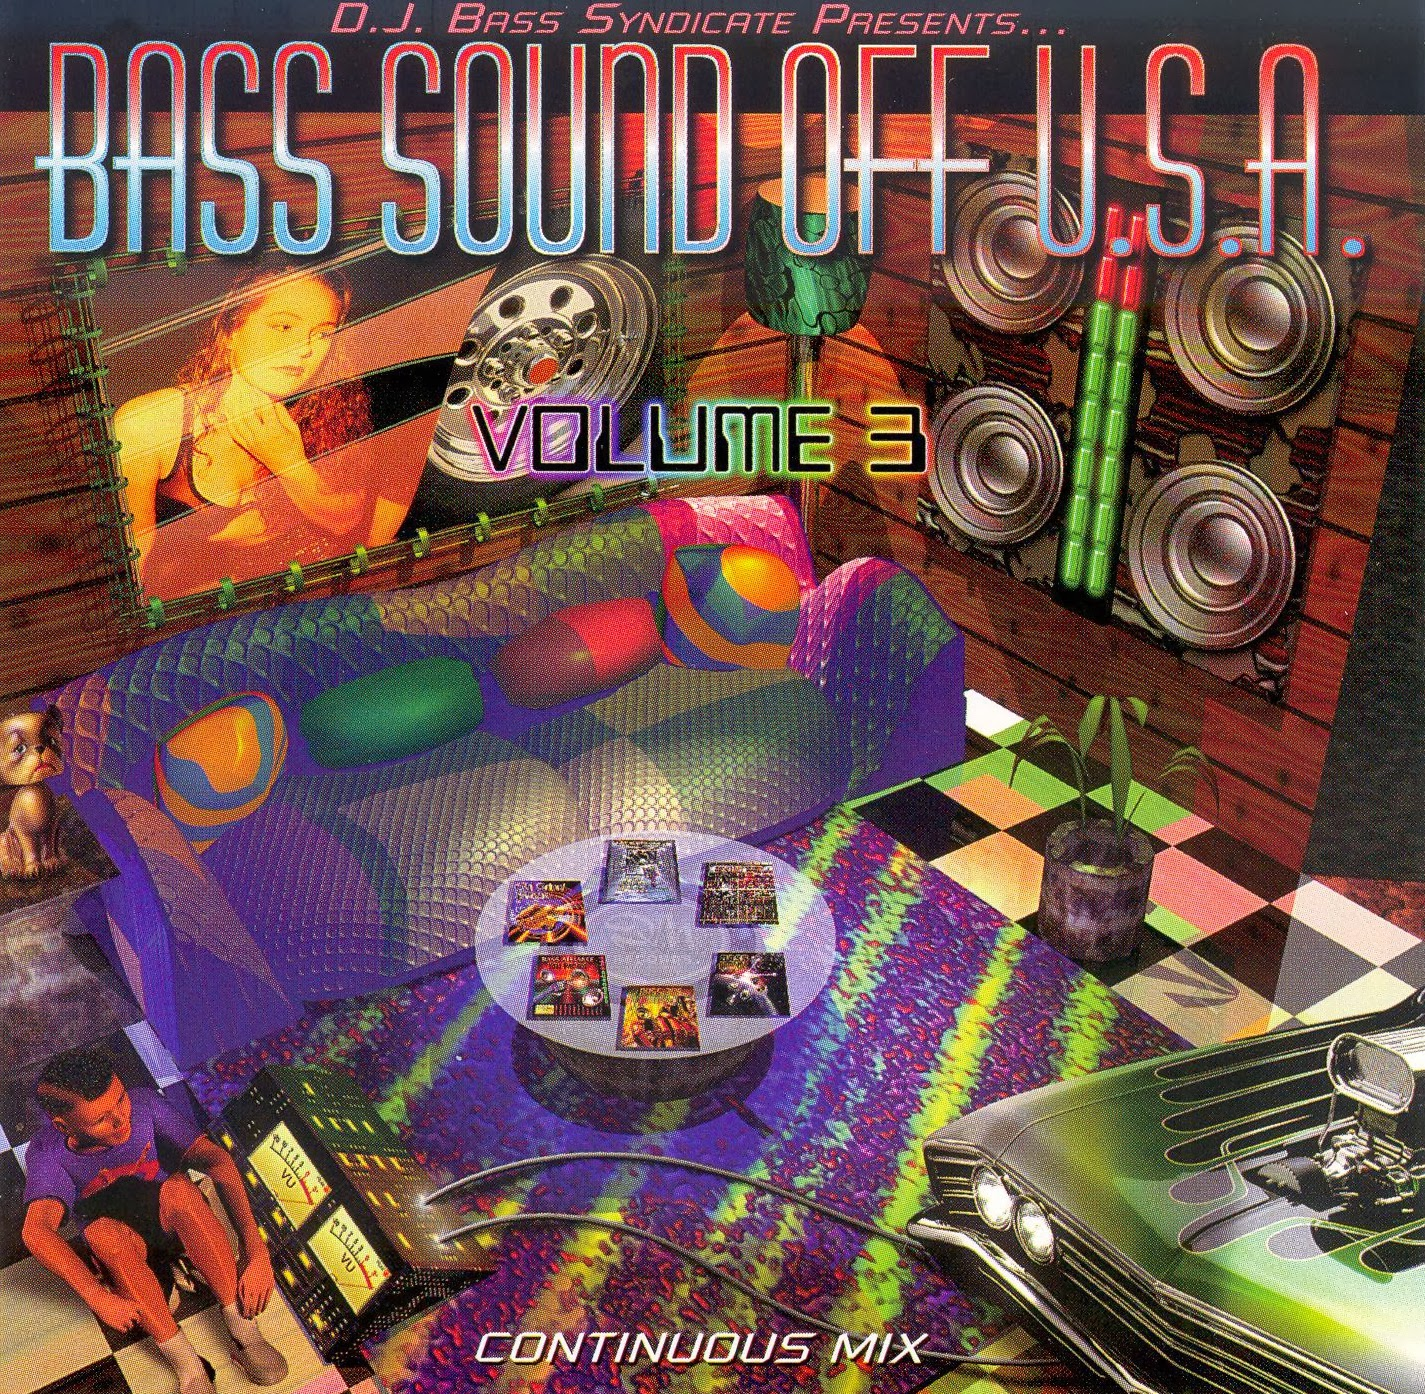 Dj Bass Syndicate Presents Bass Sound Off U.S.A. Vol. call of duty waw mult